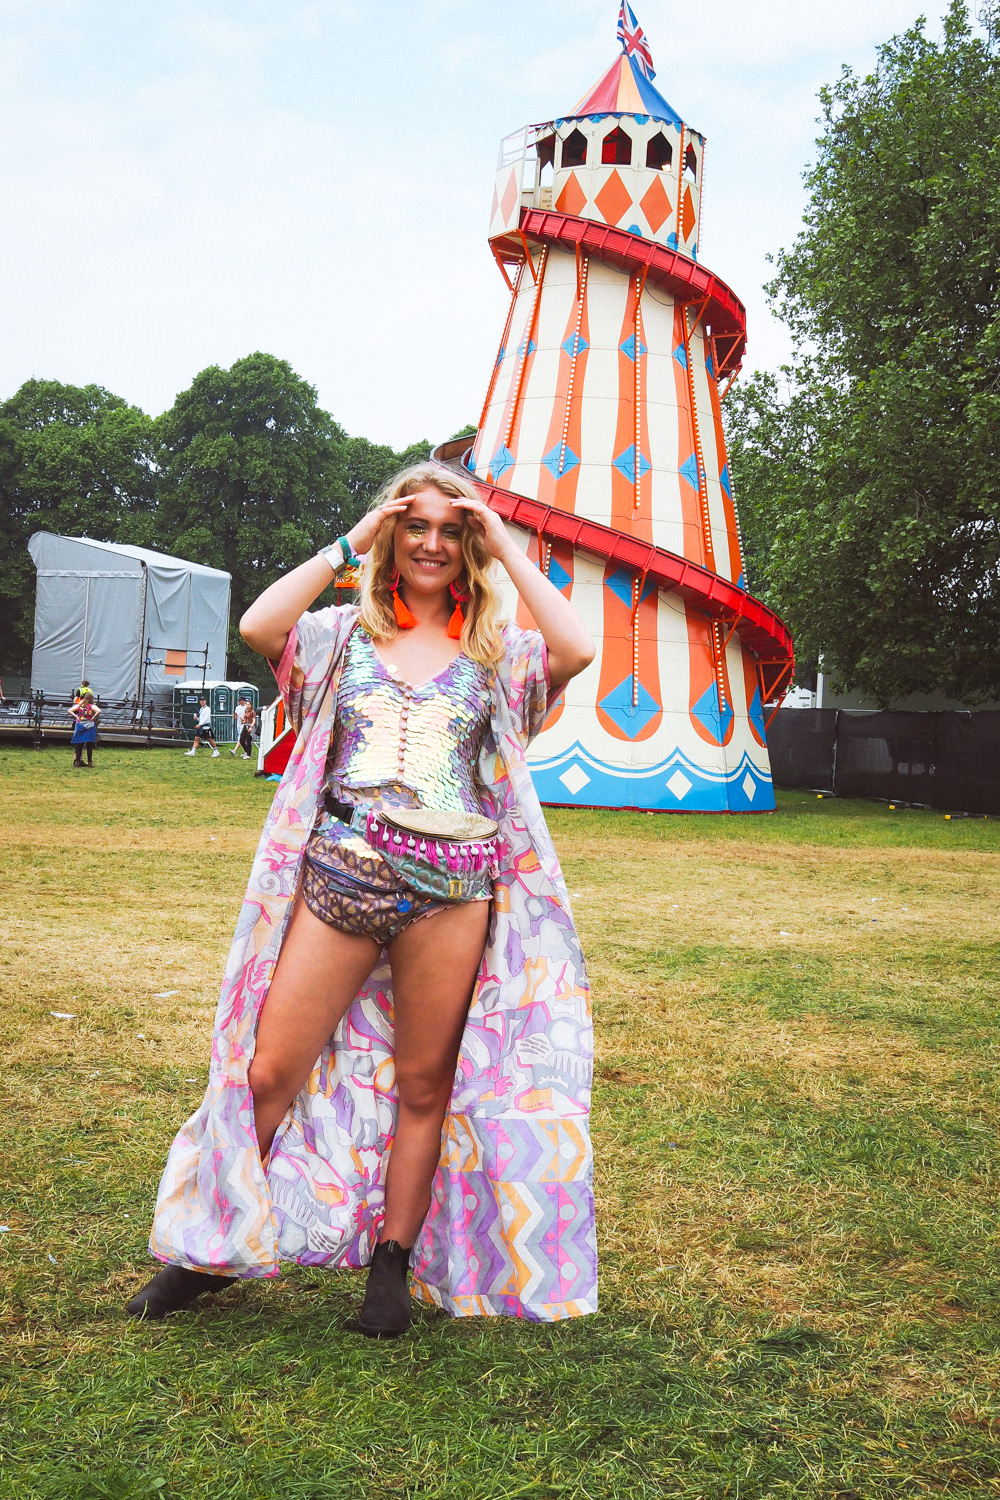 The Best Bumbags for Festivals & ways to style them